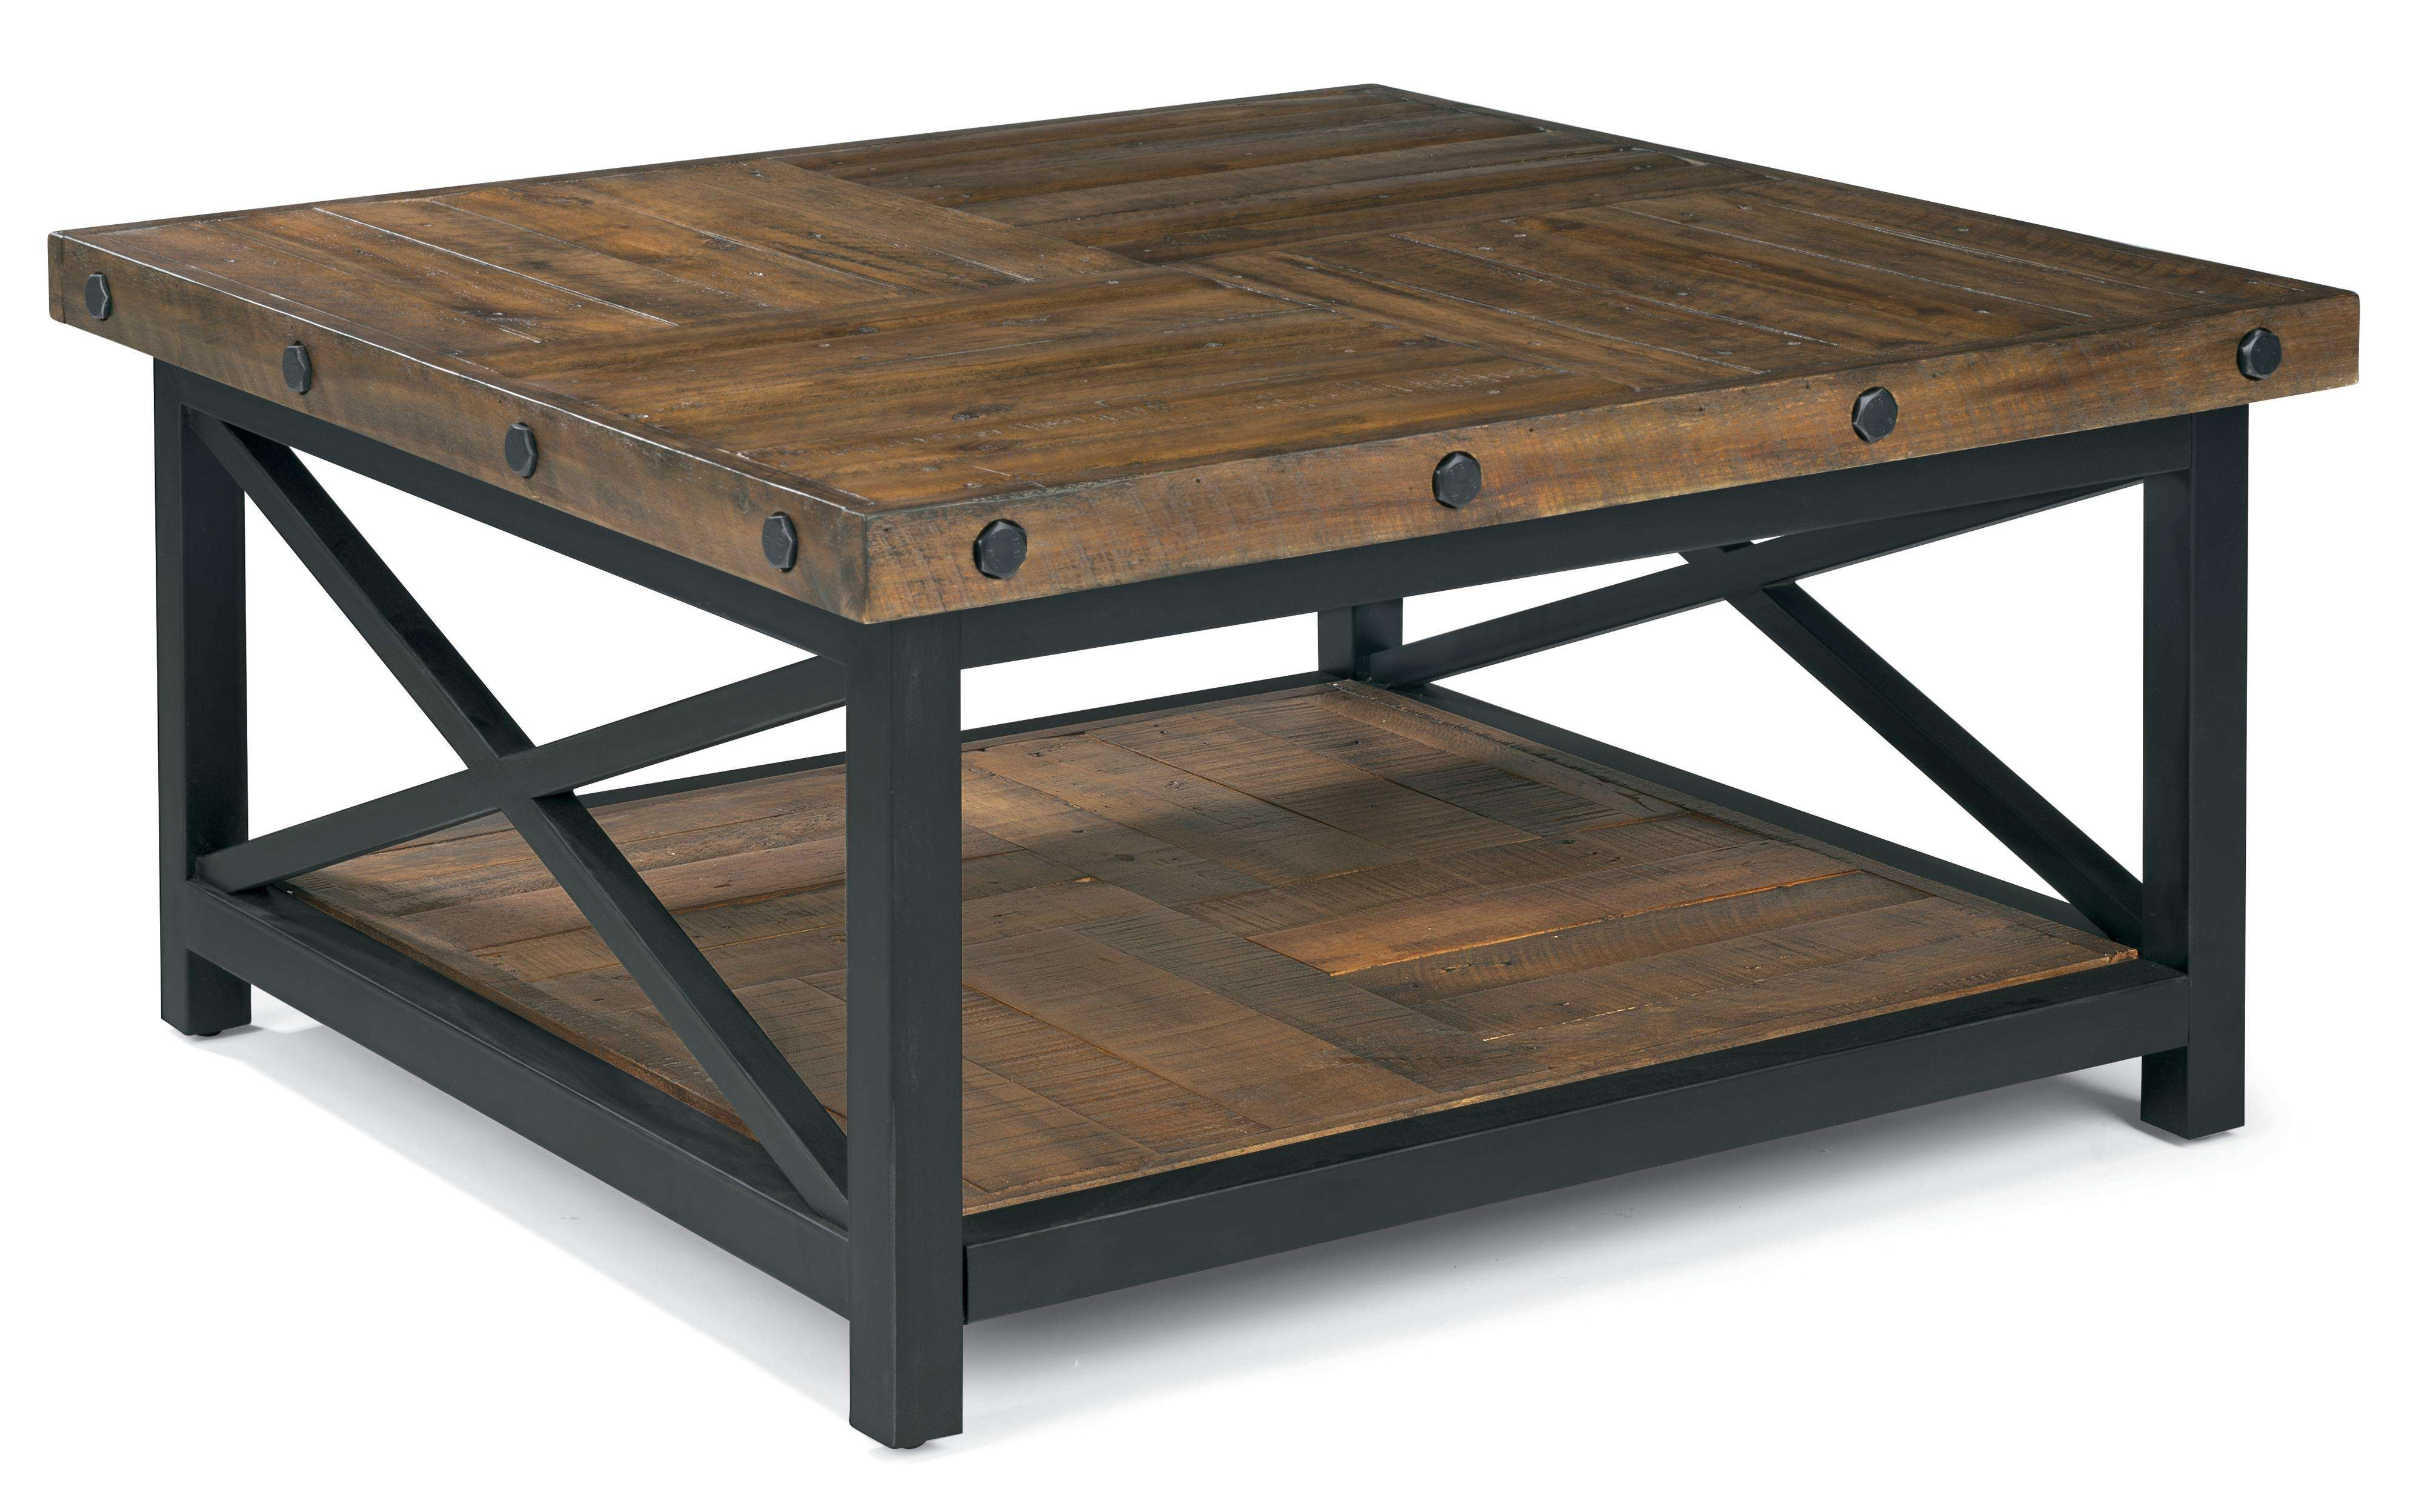 Popular Cheap Wood Coffee Tables Pertaining To Coffee Tables : Painted Coffee Table Wood And Glass Barnwood Buy (View 15 of 20)